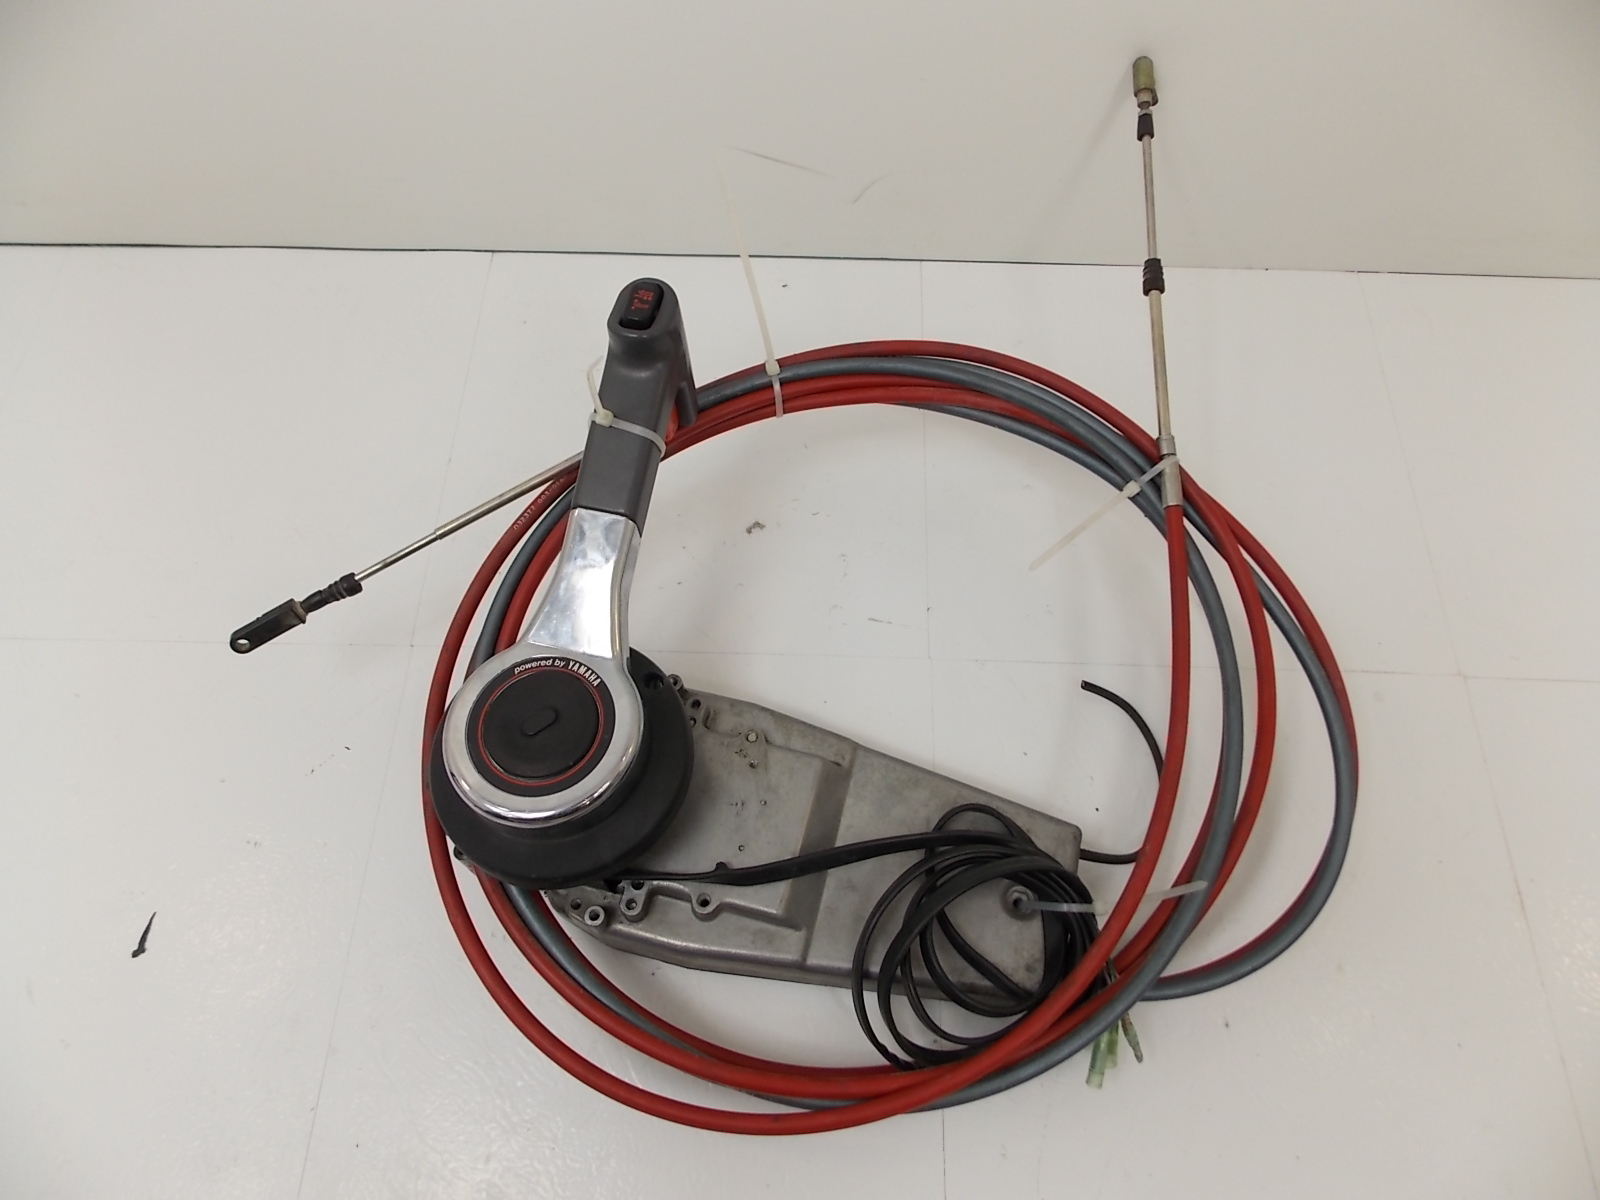 Yamaha Outboard Control Cables : Yamaha concealed side mount remote control box cables